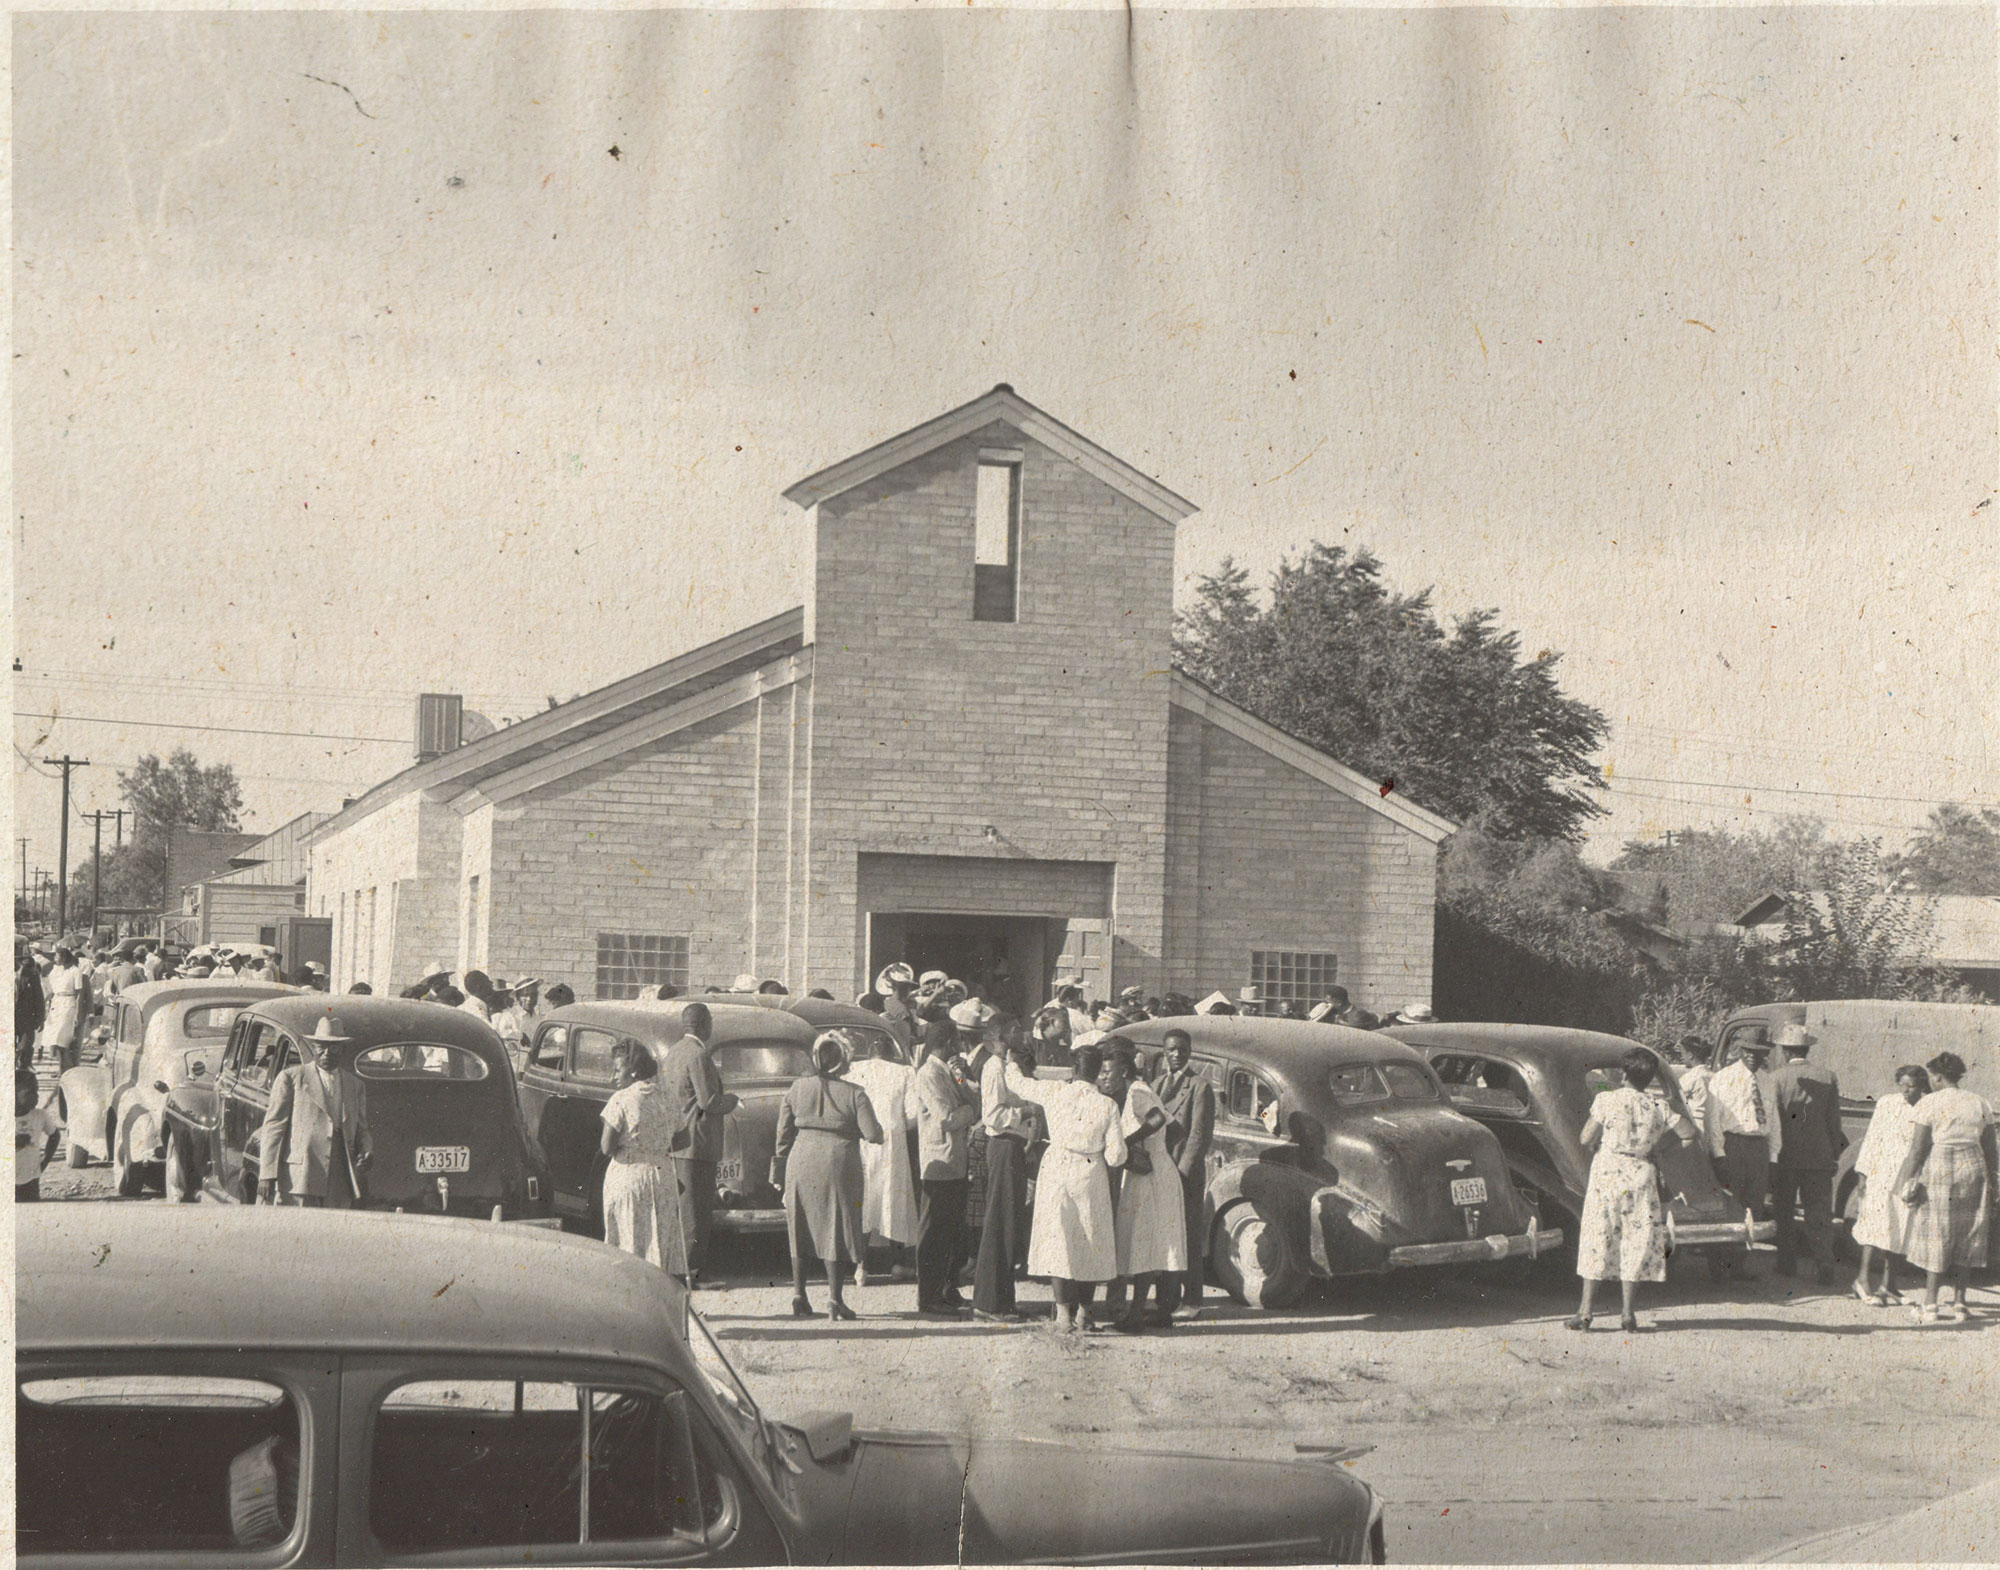 Church of God in Christ dedication in Downtown Phoenix; Photo courtesy City of Phoenix Historic Preservation Office